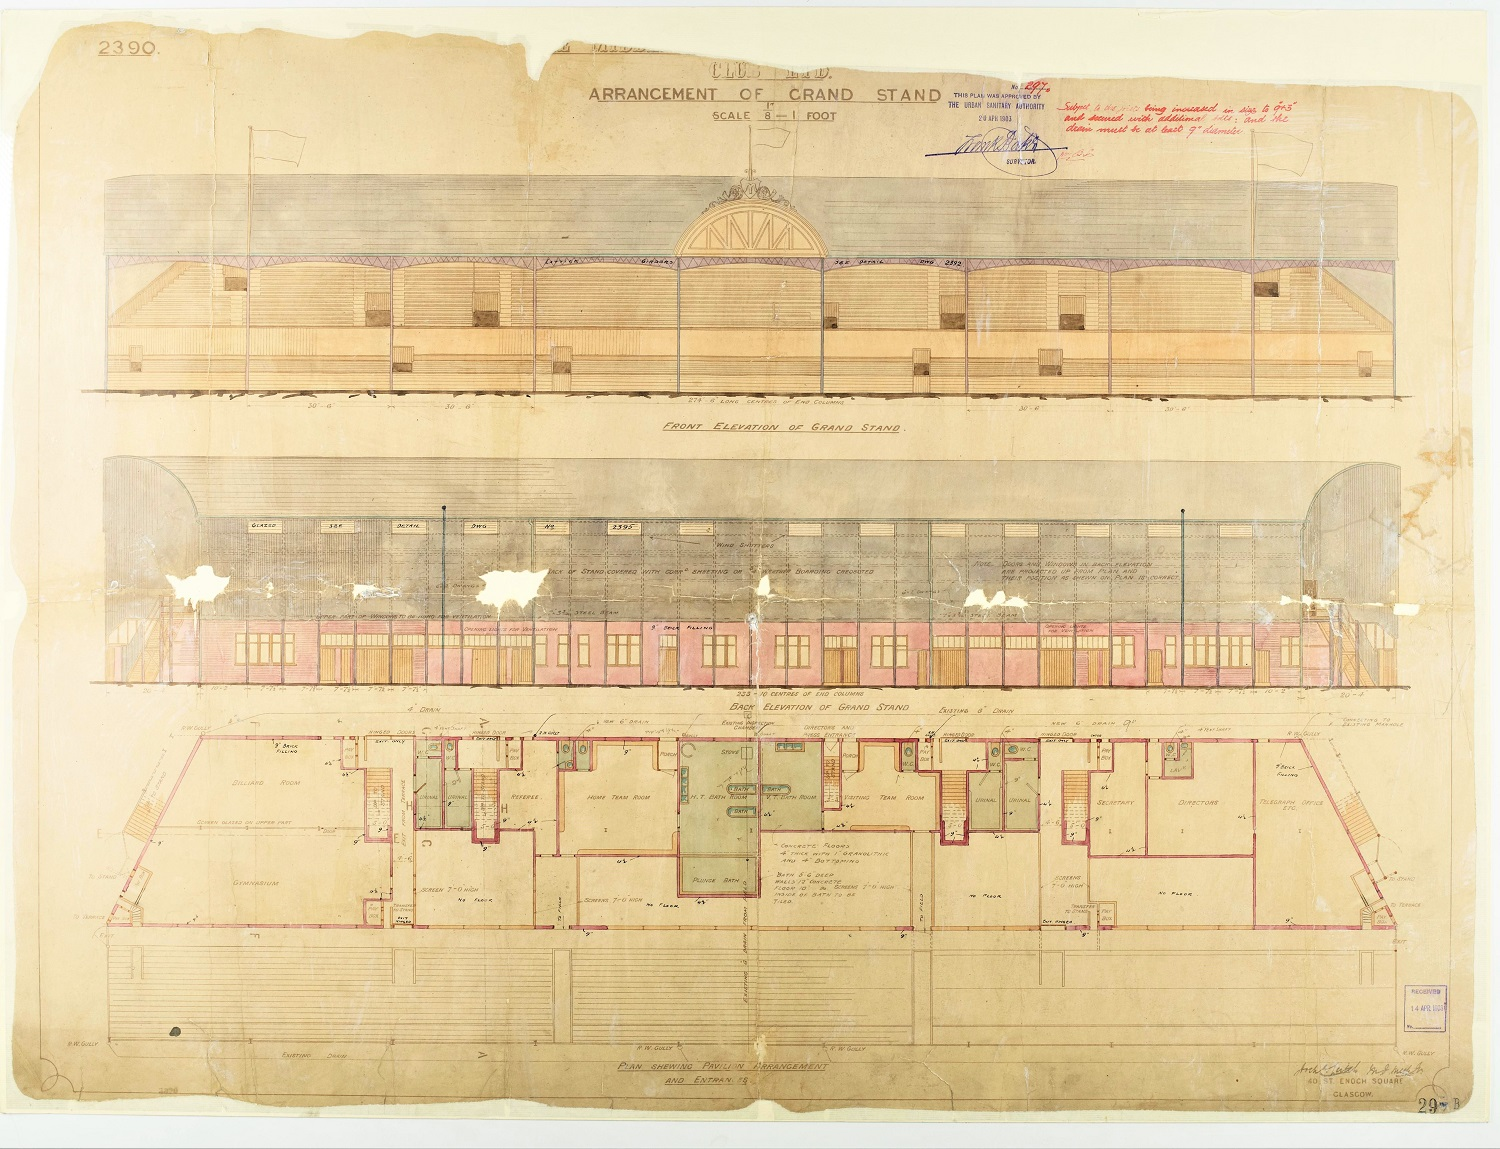 A plan of the Ayresome Park grandstand - Archibald Leitch (Teesside Archives)